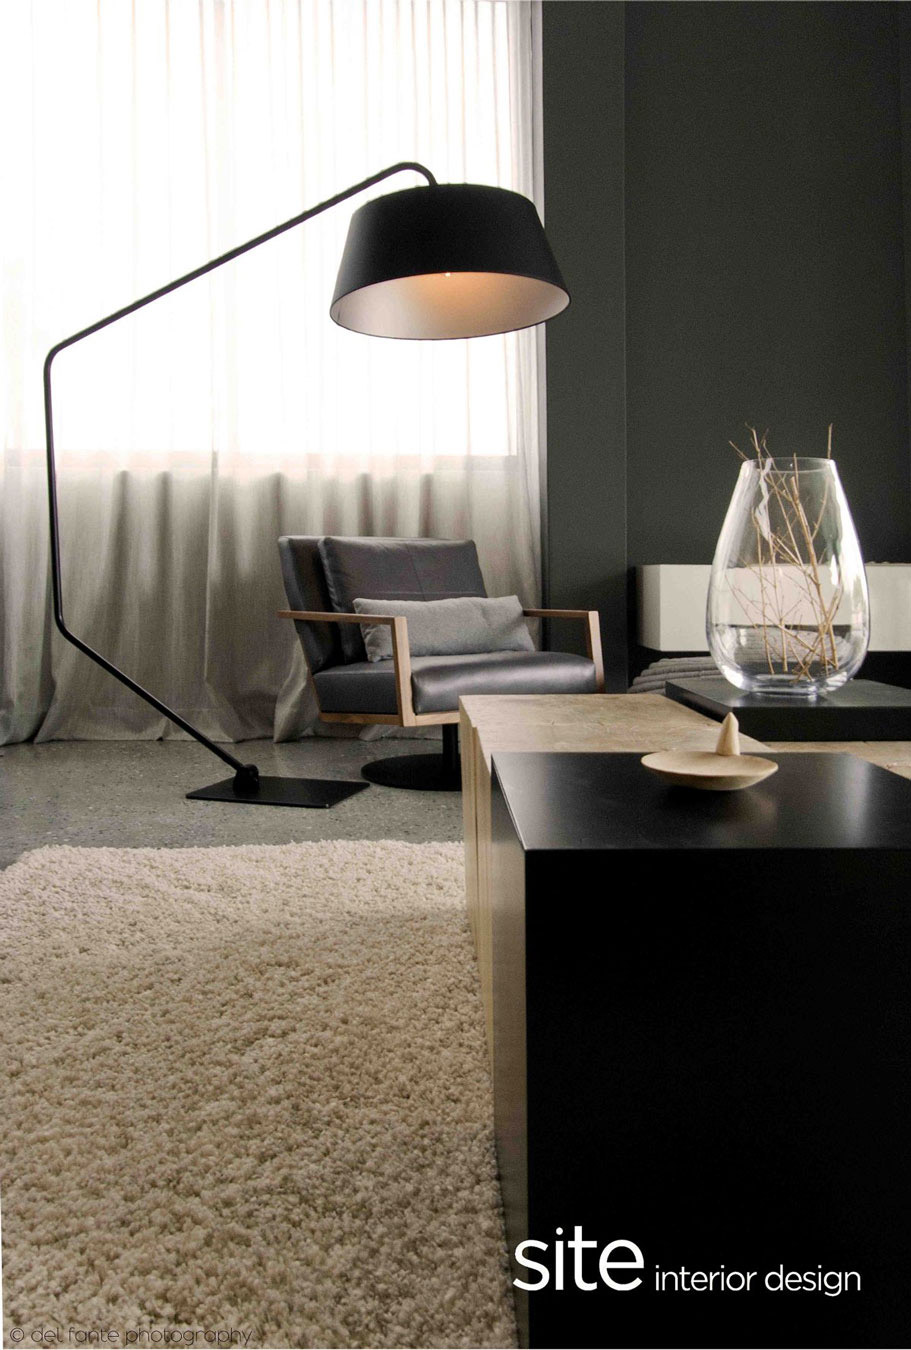 Rug, Lighting, Table, Aupiais House in Camps Bay, South Africa